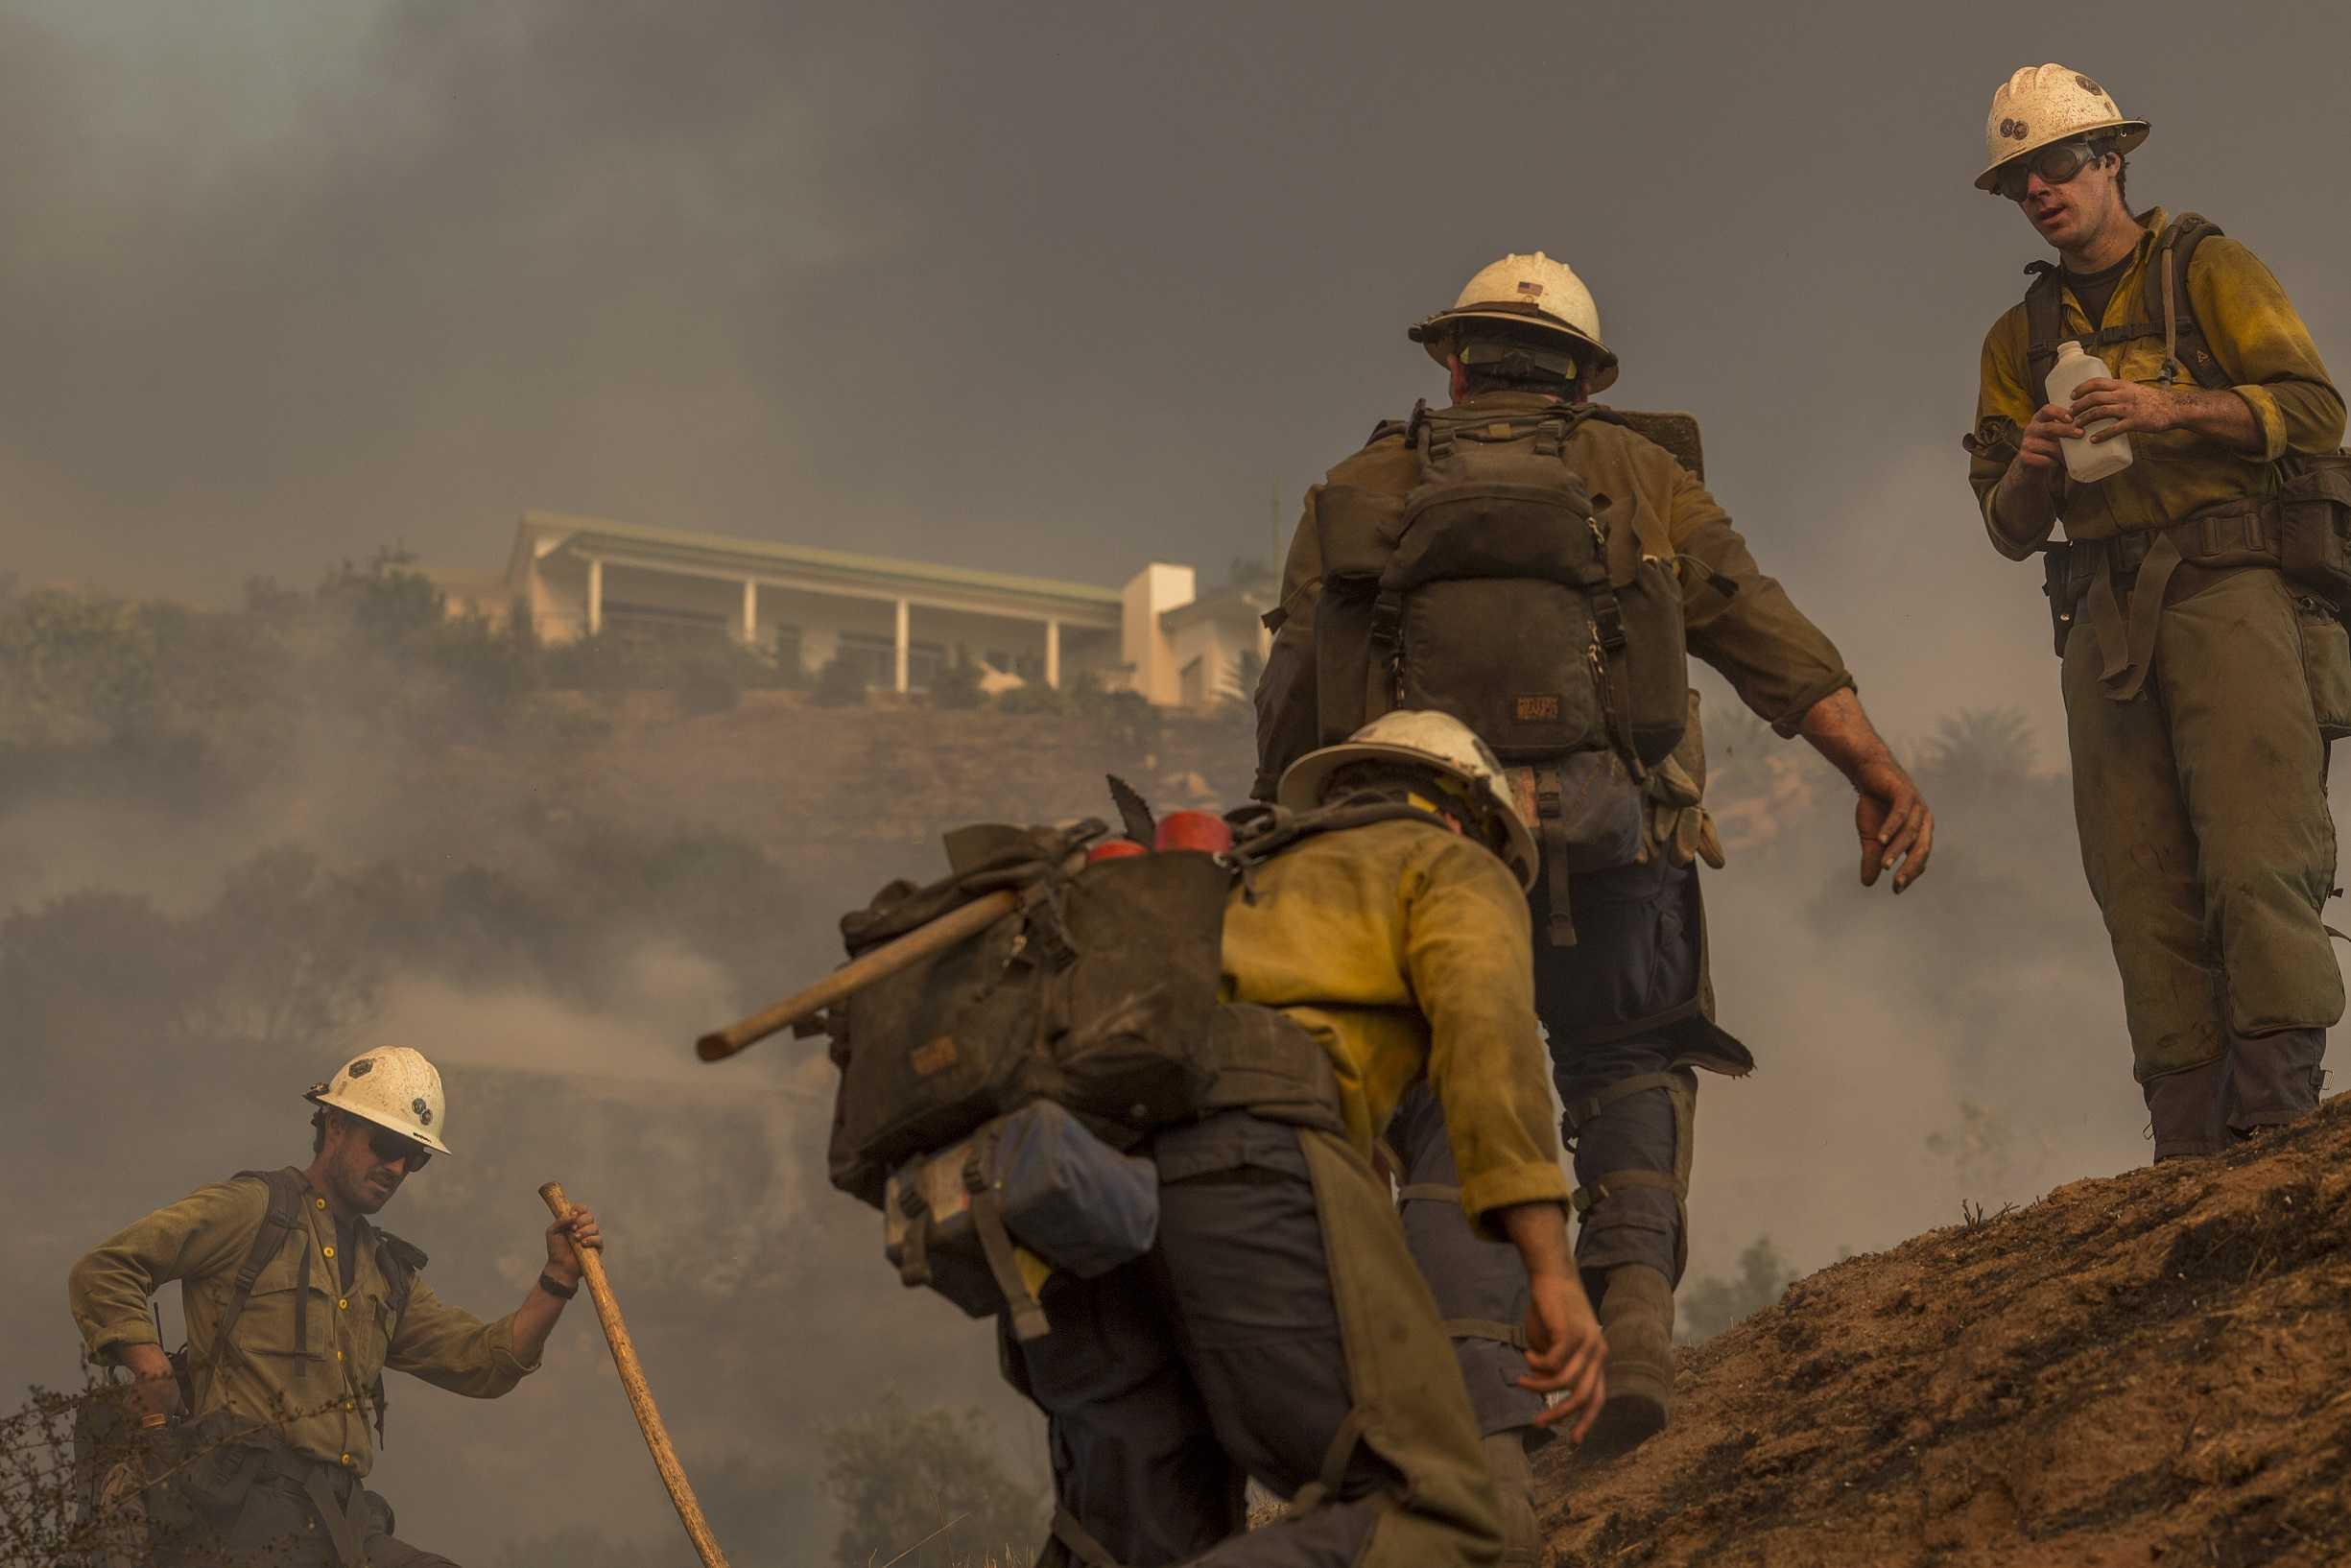 8,000 firefighters take on Southern California wildfires